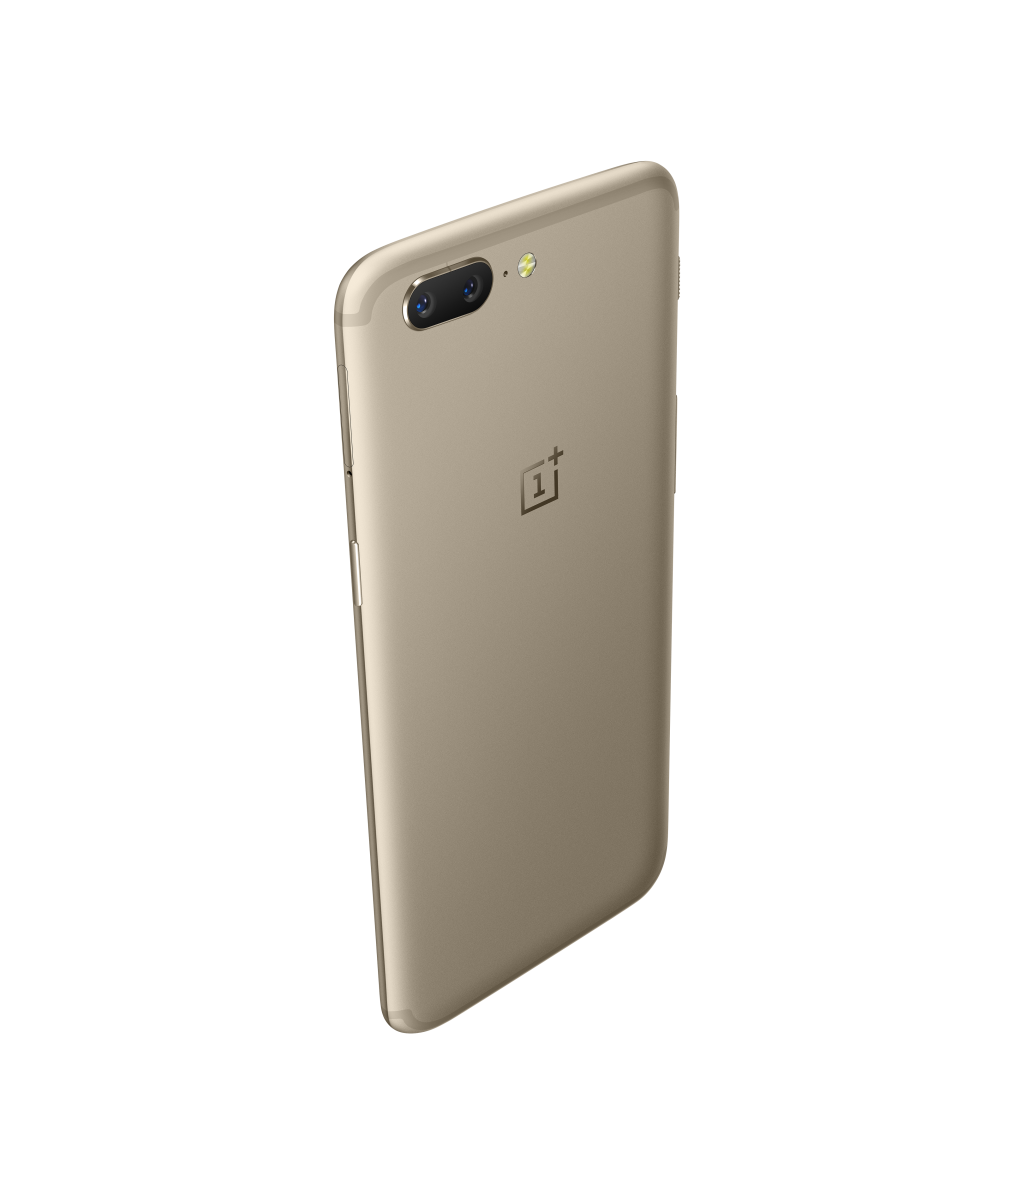 OnePlus 5 soft gold gives you limited edition bling